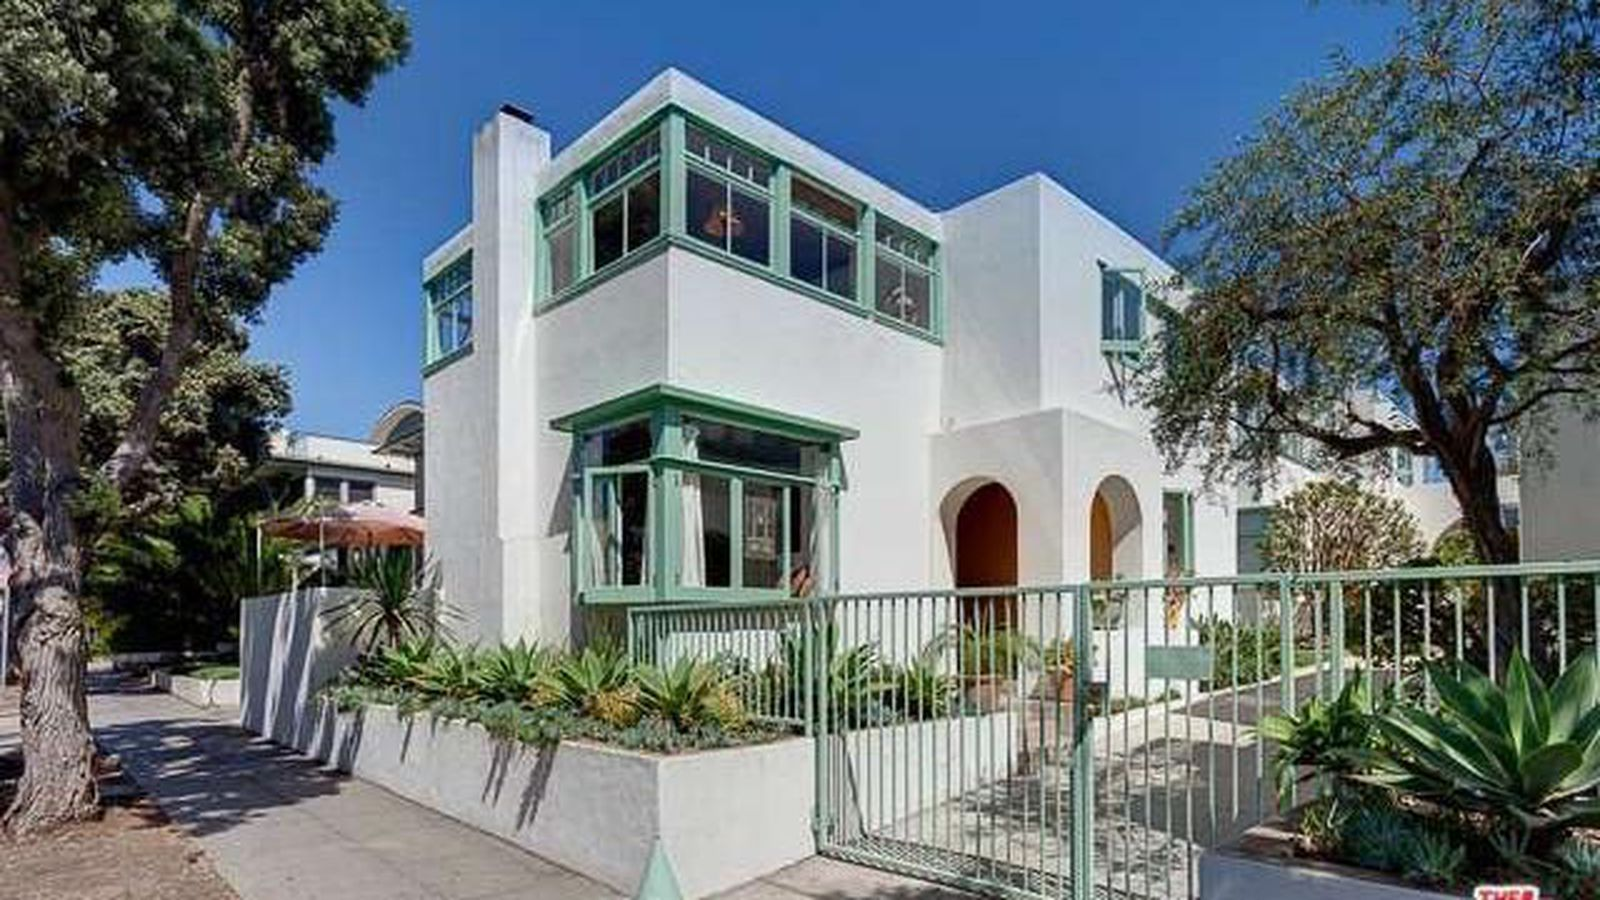 Stunning Irving Gill Townhouse In Santa Monica Asks 2 6m